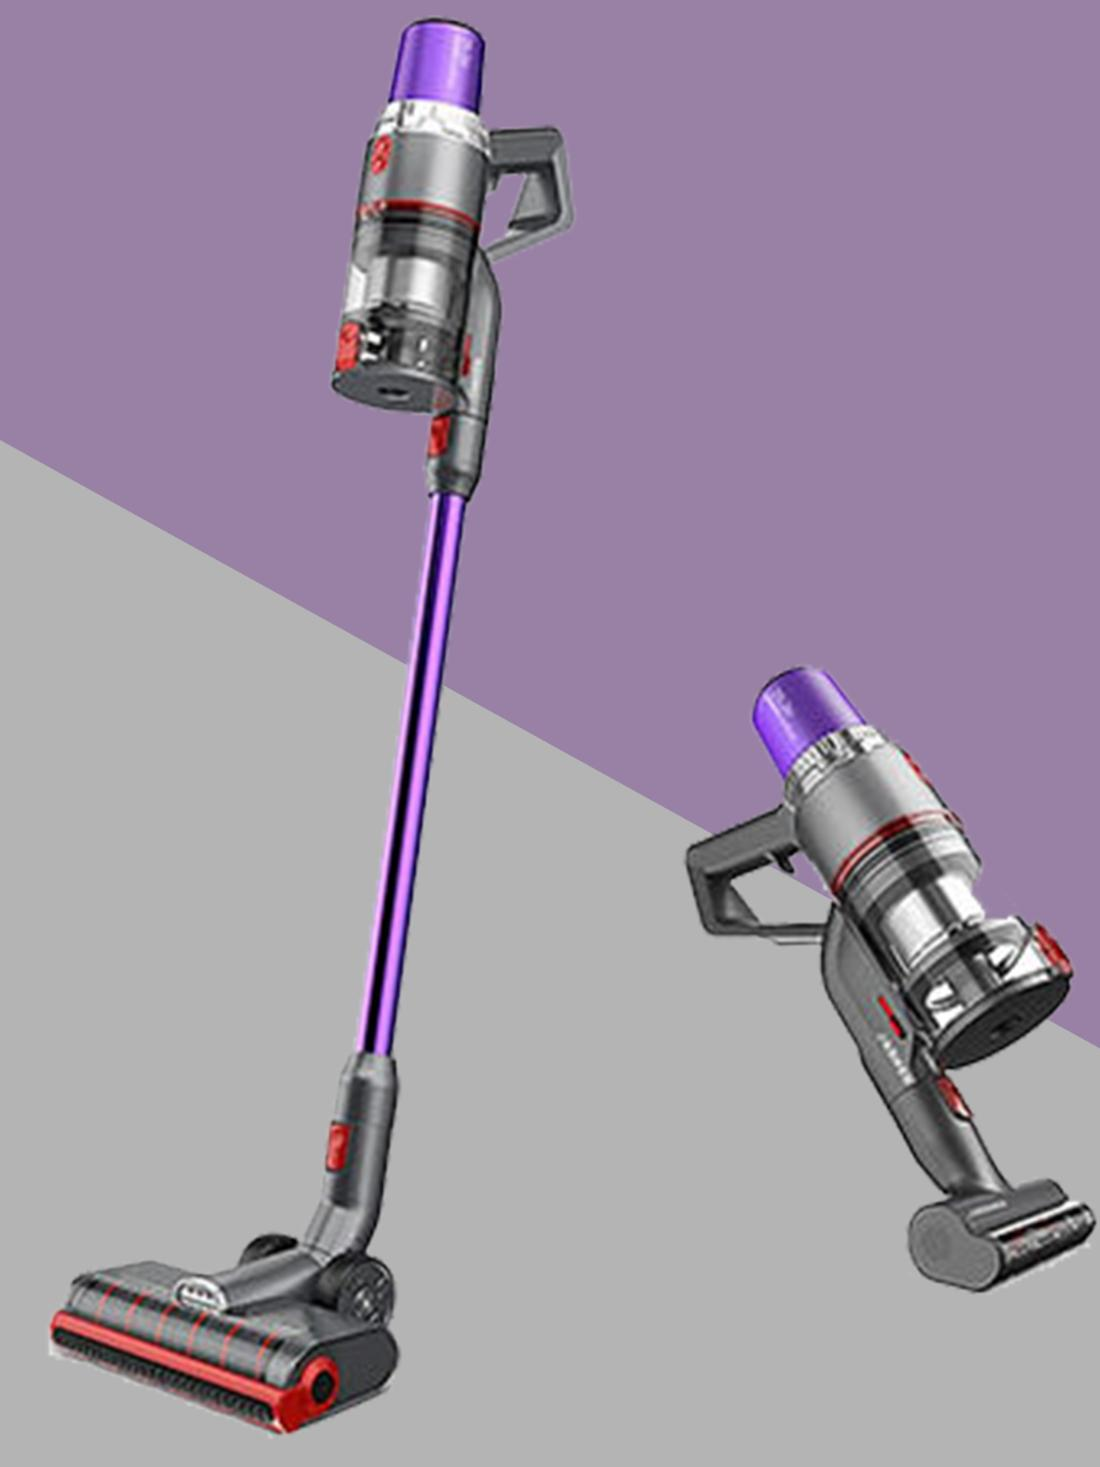 How To Use Sowtech Cordless Vacuum?